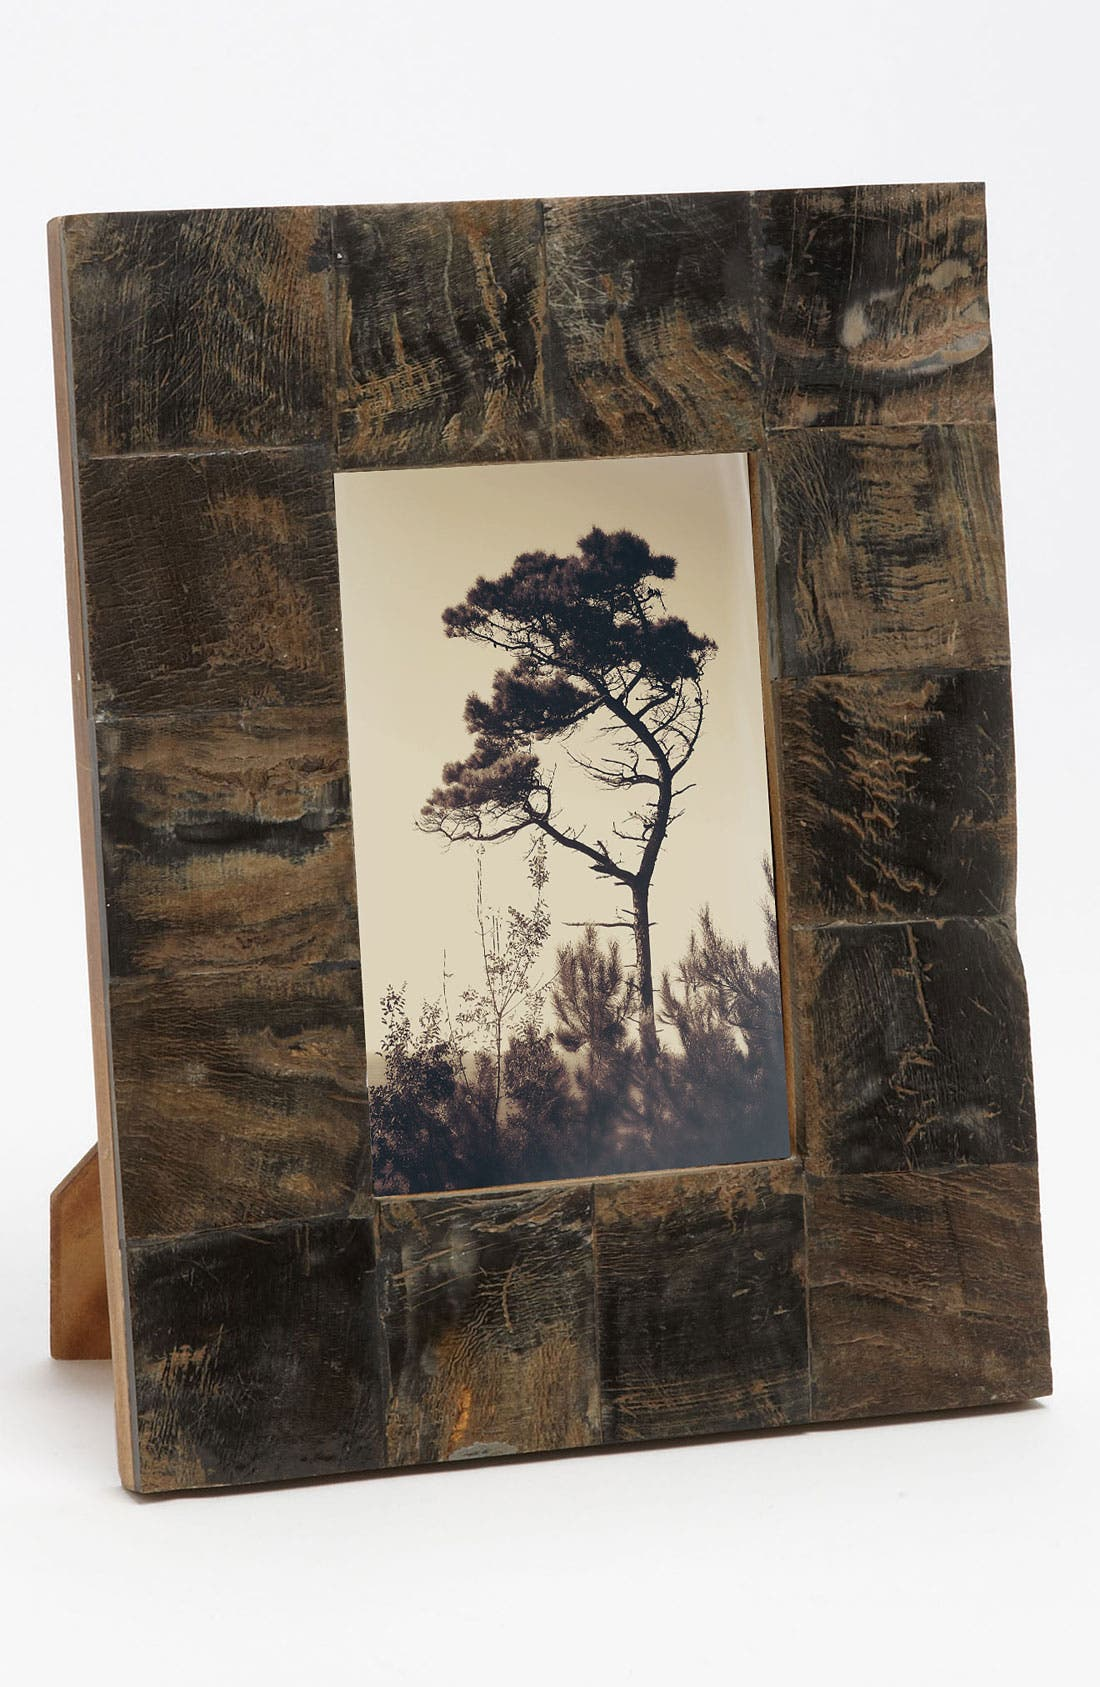 Alternate Image 1 Selected - Rustic Tile Picture Frame (4x6)